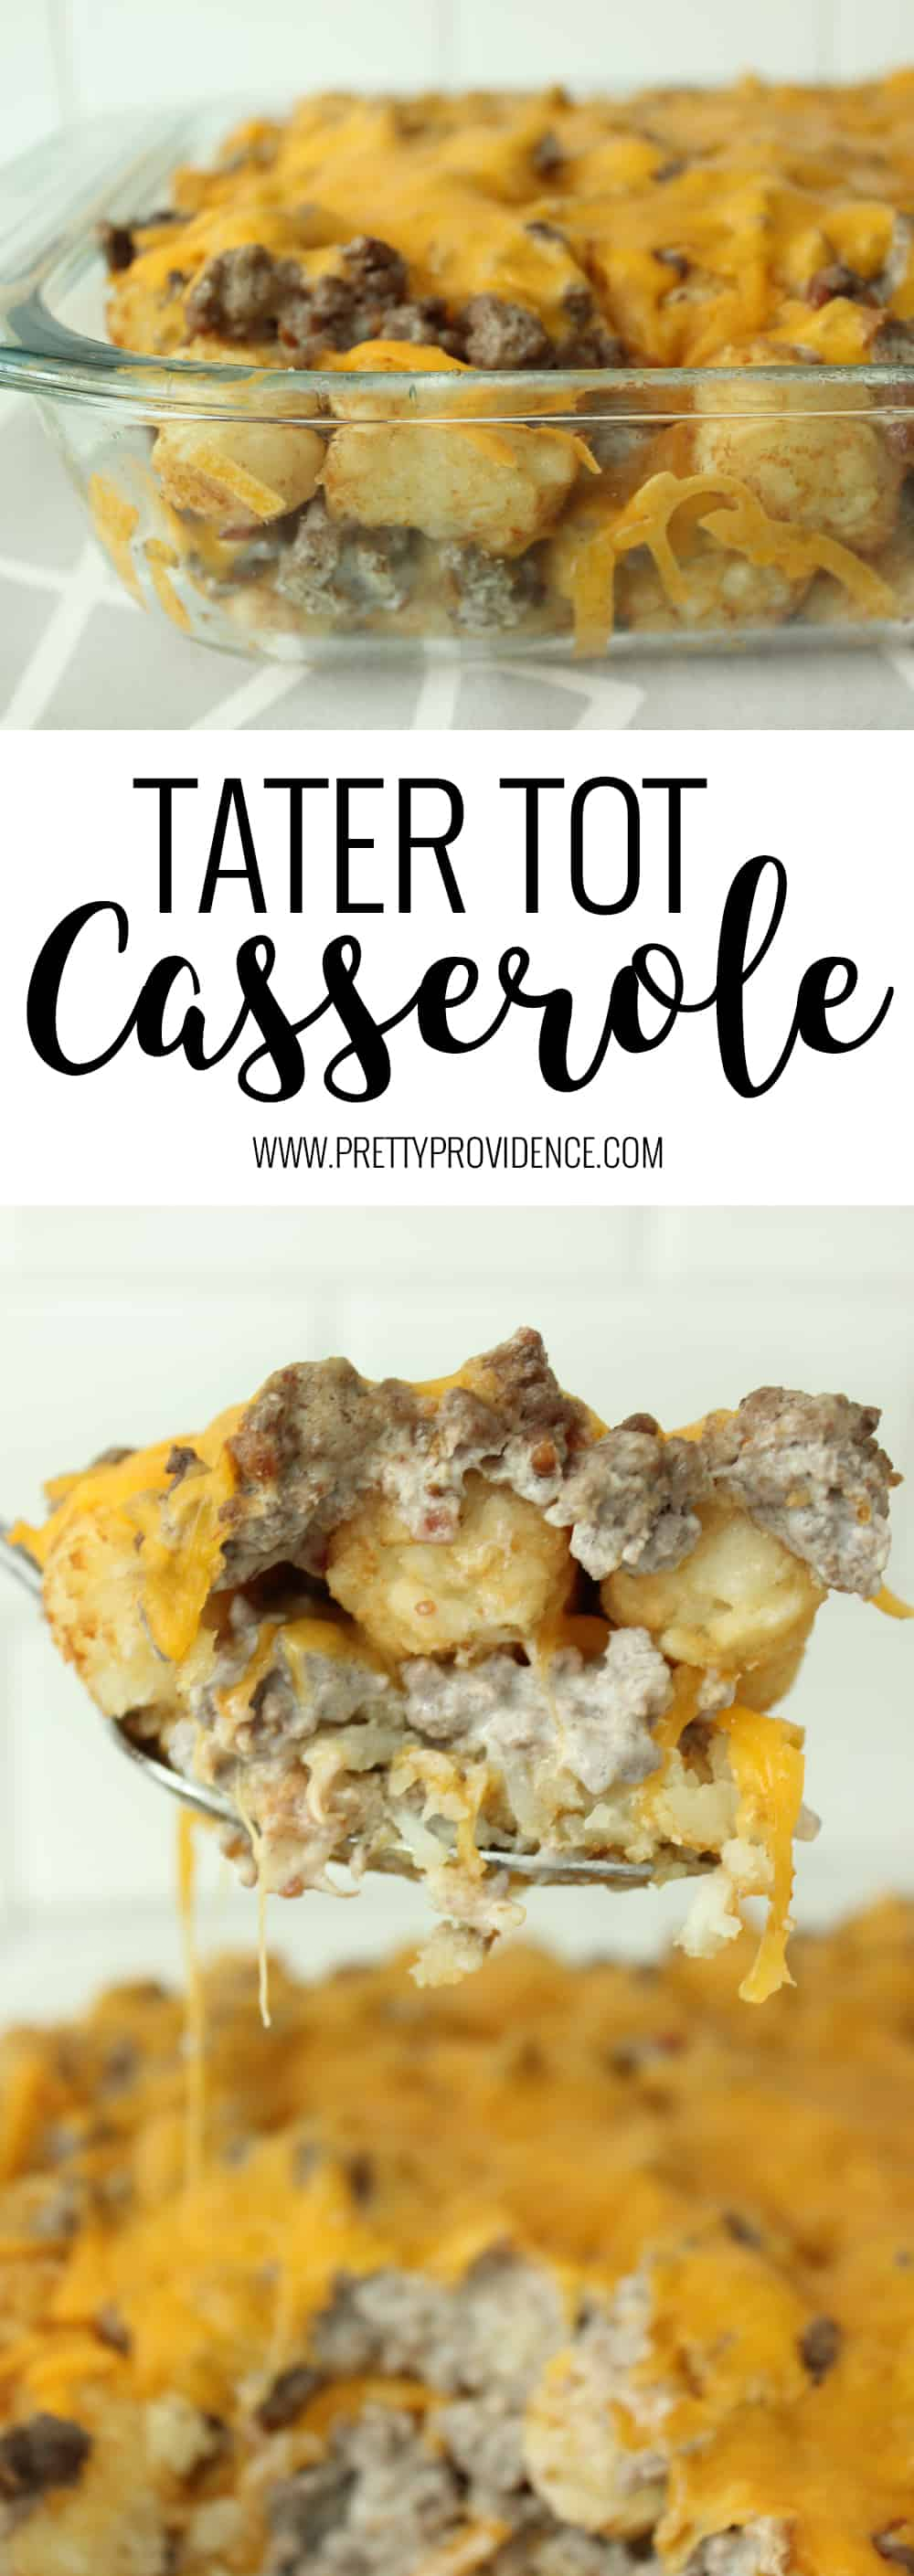 BEST tater tot casserole EVER! We love this recipe at our house! Adults and kids alike will scarf this one and ask for seconds!